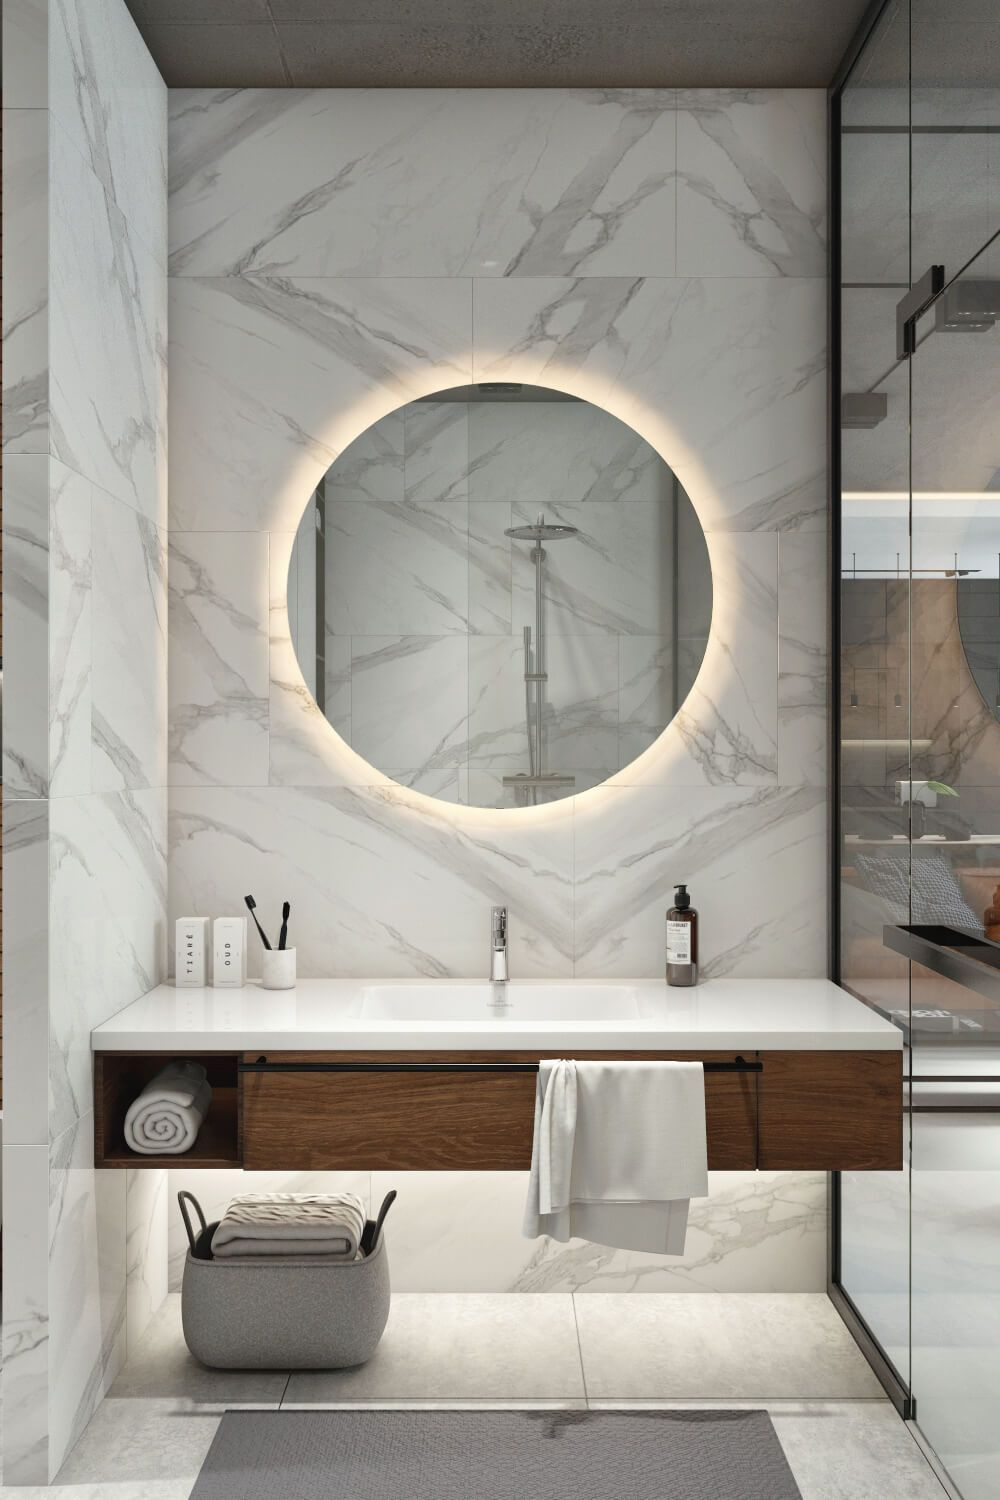 21 Best Bathroom Mirror Ideas To Reflect Your Style Bathroom Vanity Designs Bathroom Style Beautiful Bathroom Vanity